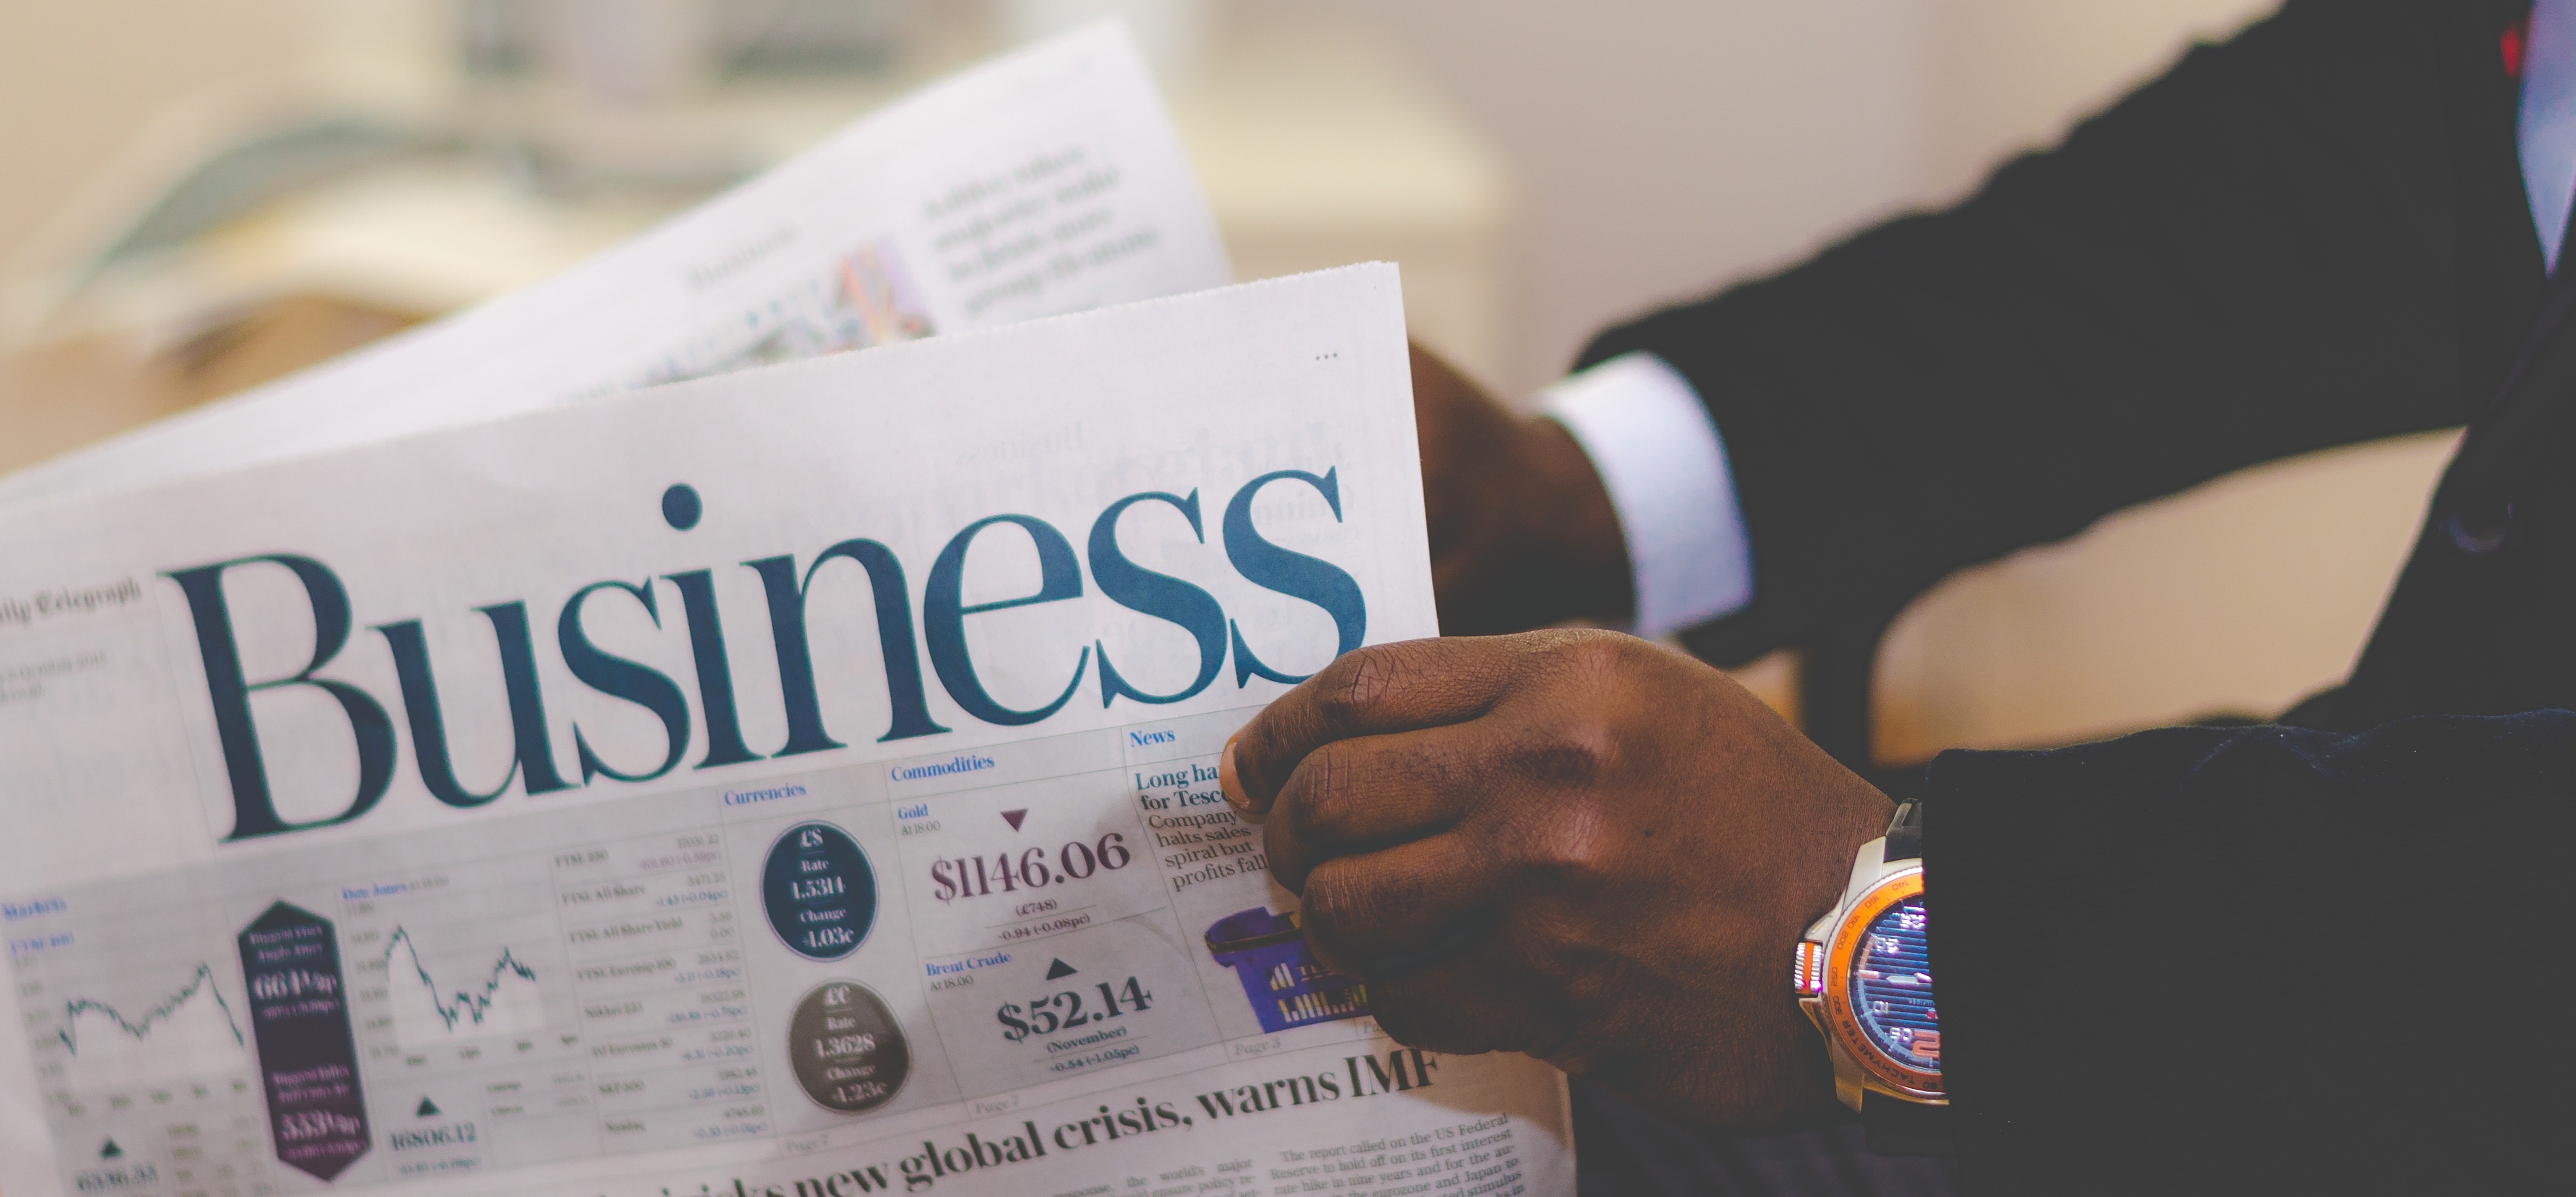 4 Things I (Re)Learned About Content Marketing Writing for a Newspaper